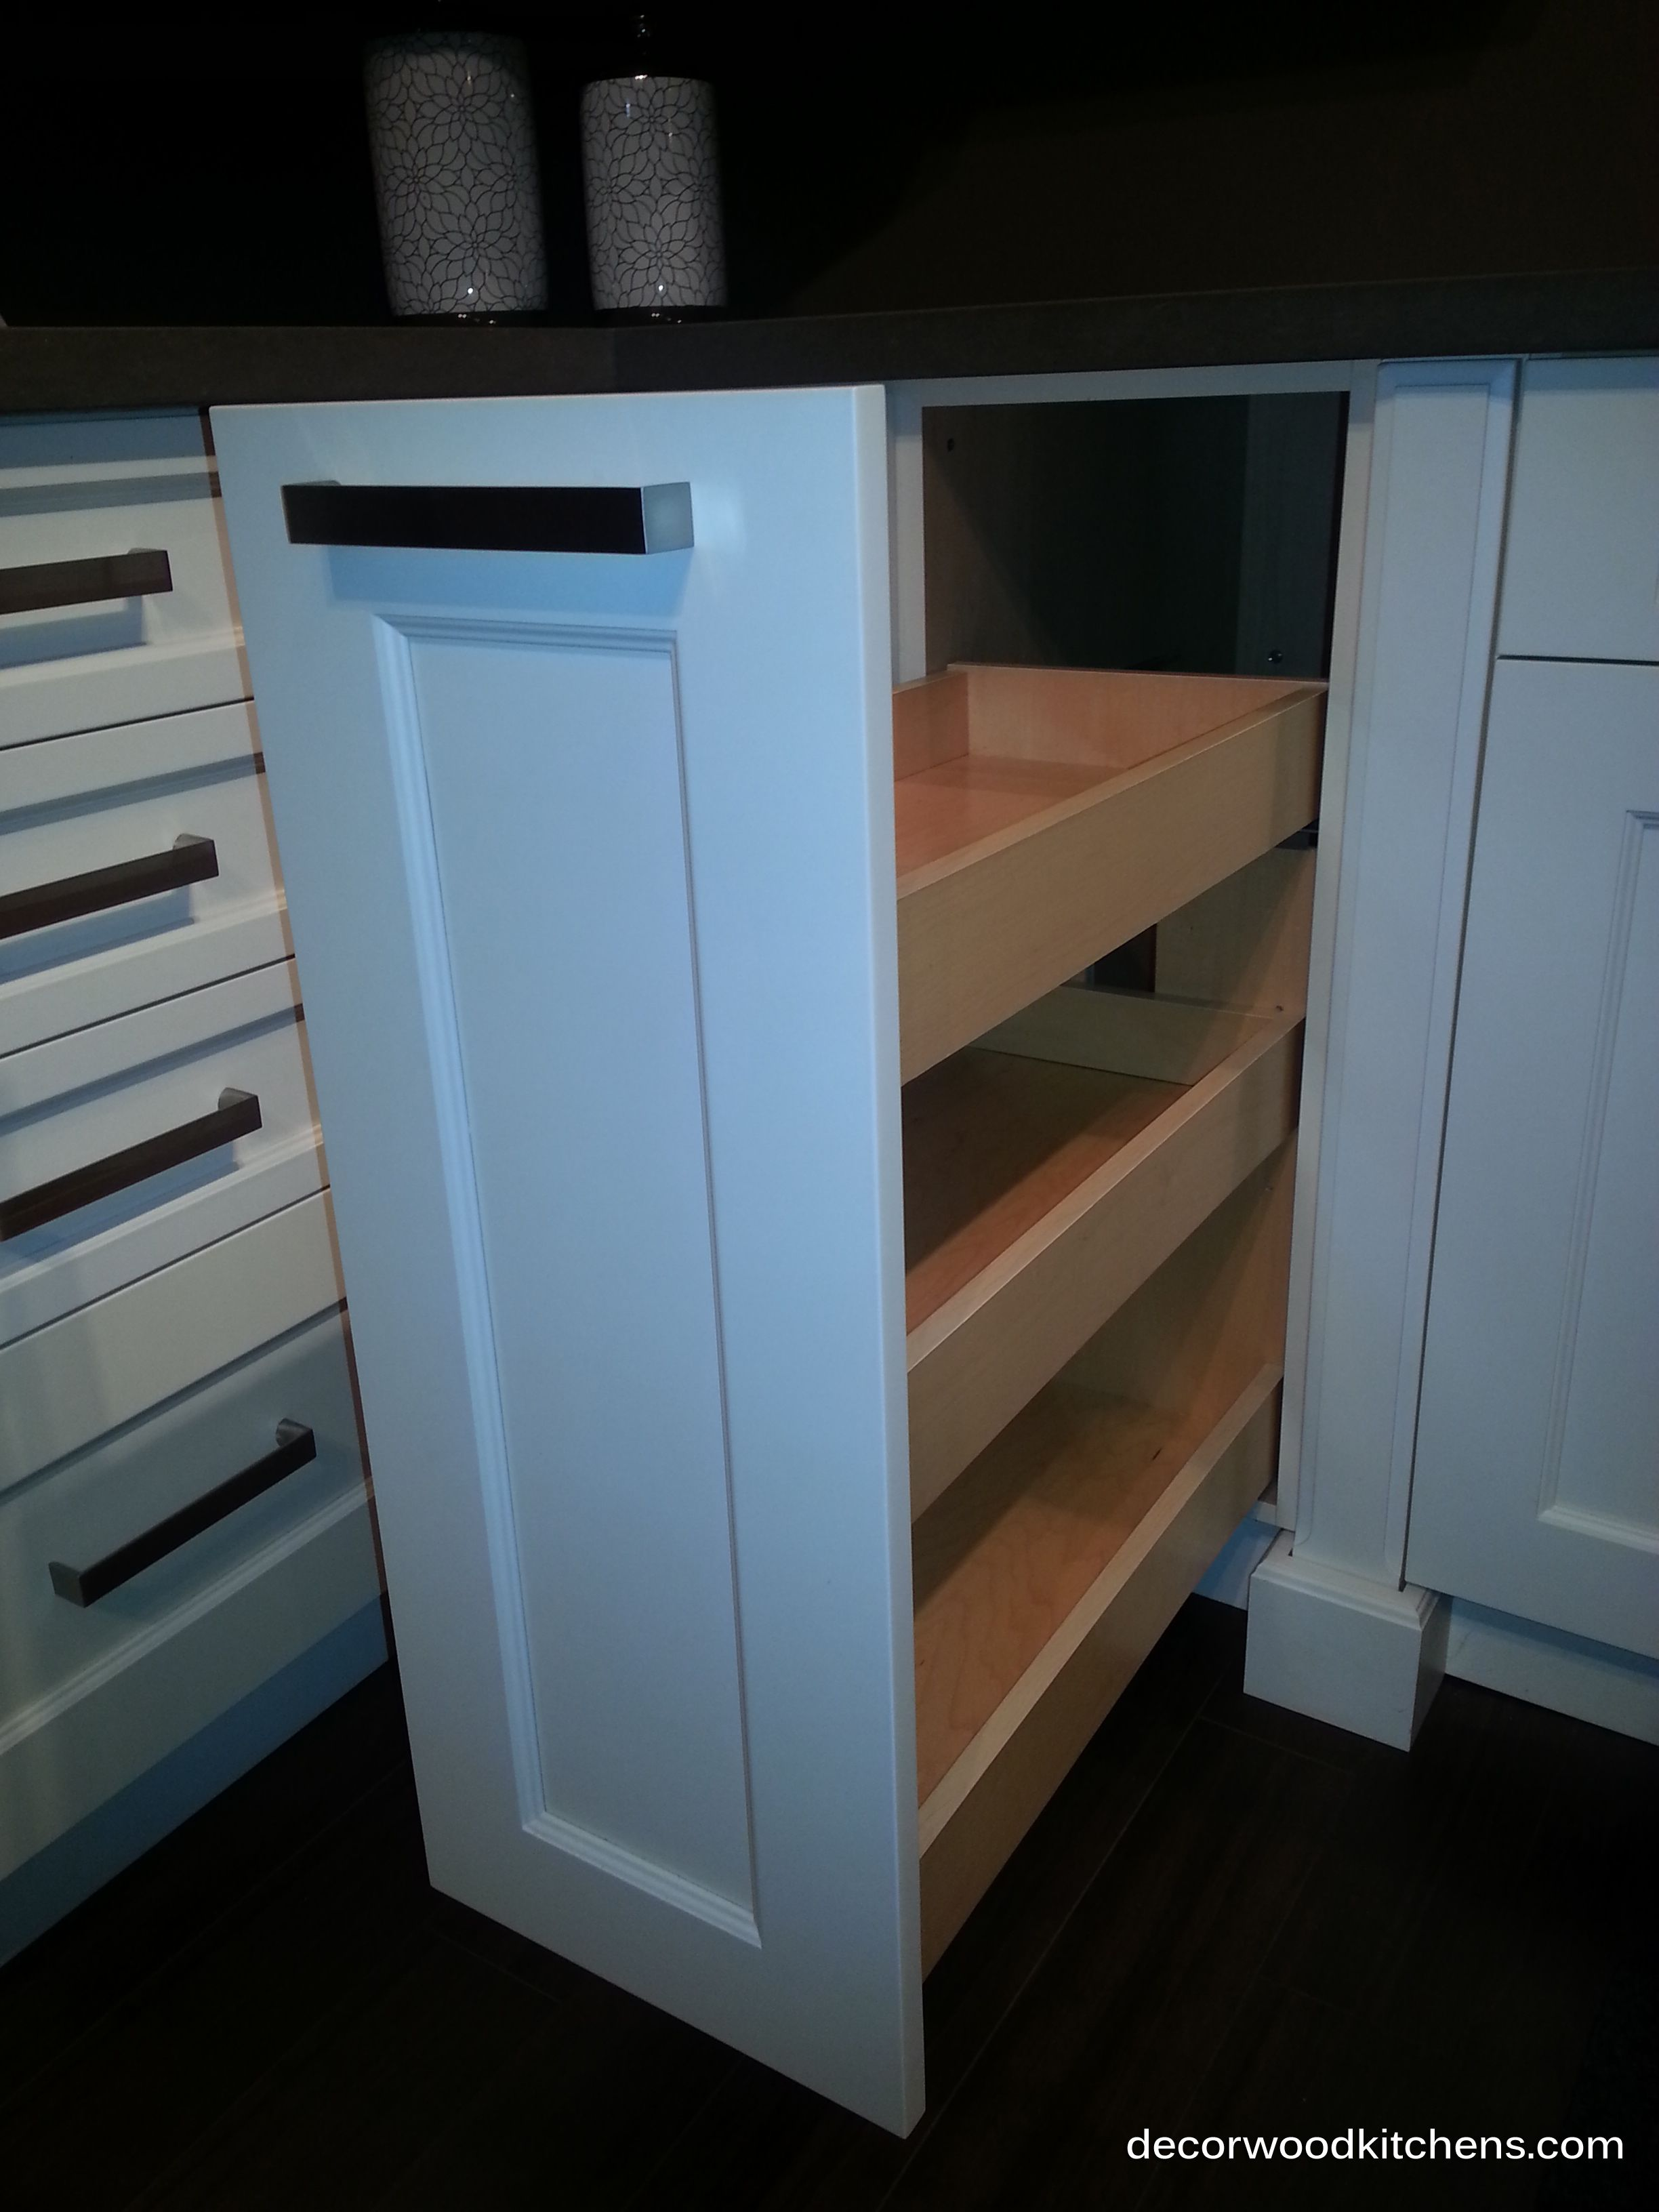 Pull out spice drawer. Middle shelf is adjustable to allow for ...